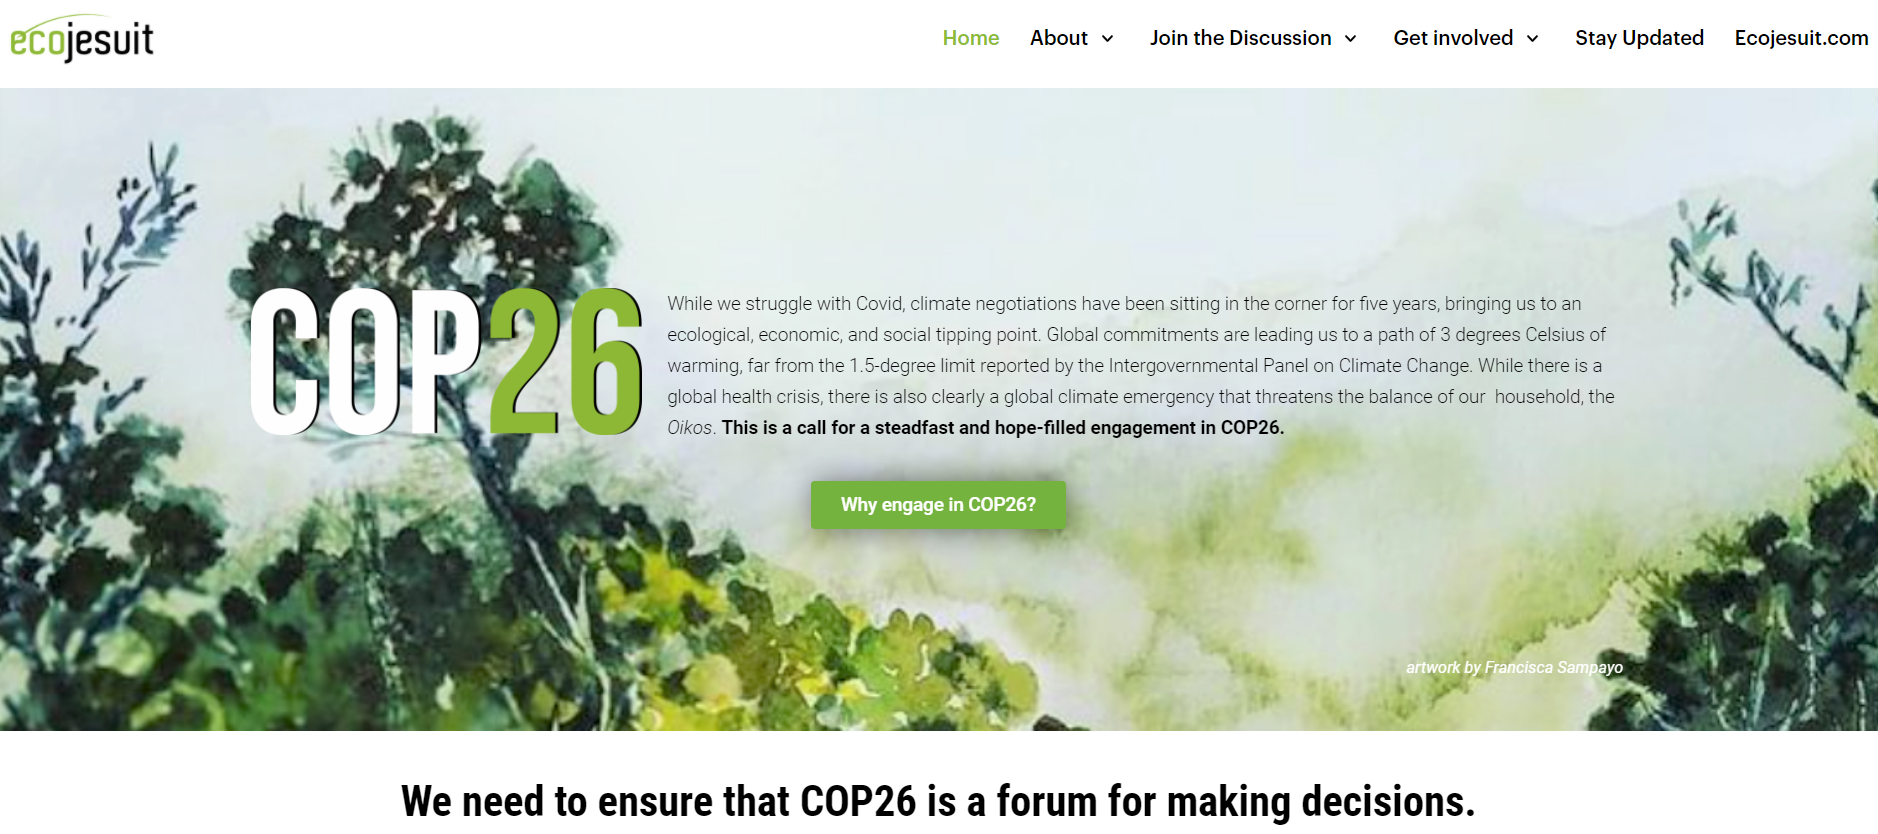 Ecojesuit@COP26 website: Seeking greater climate ambition and local-global collaboration